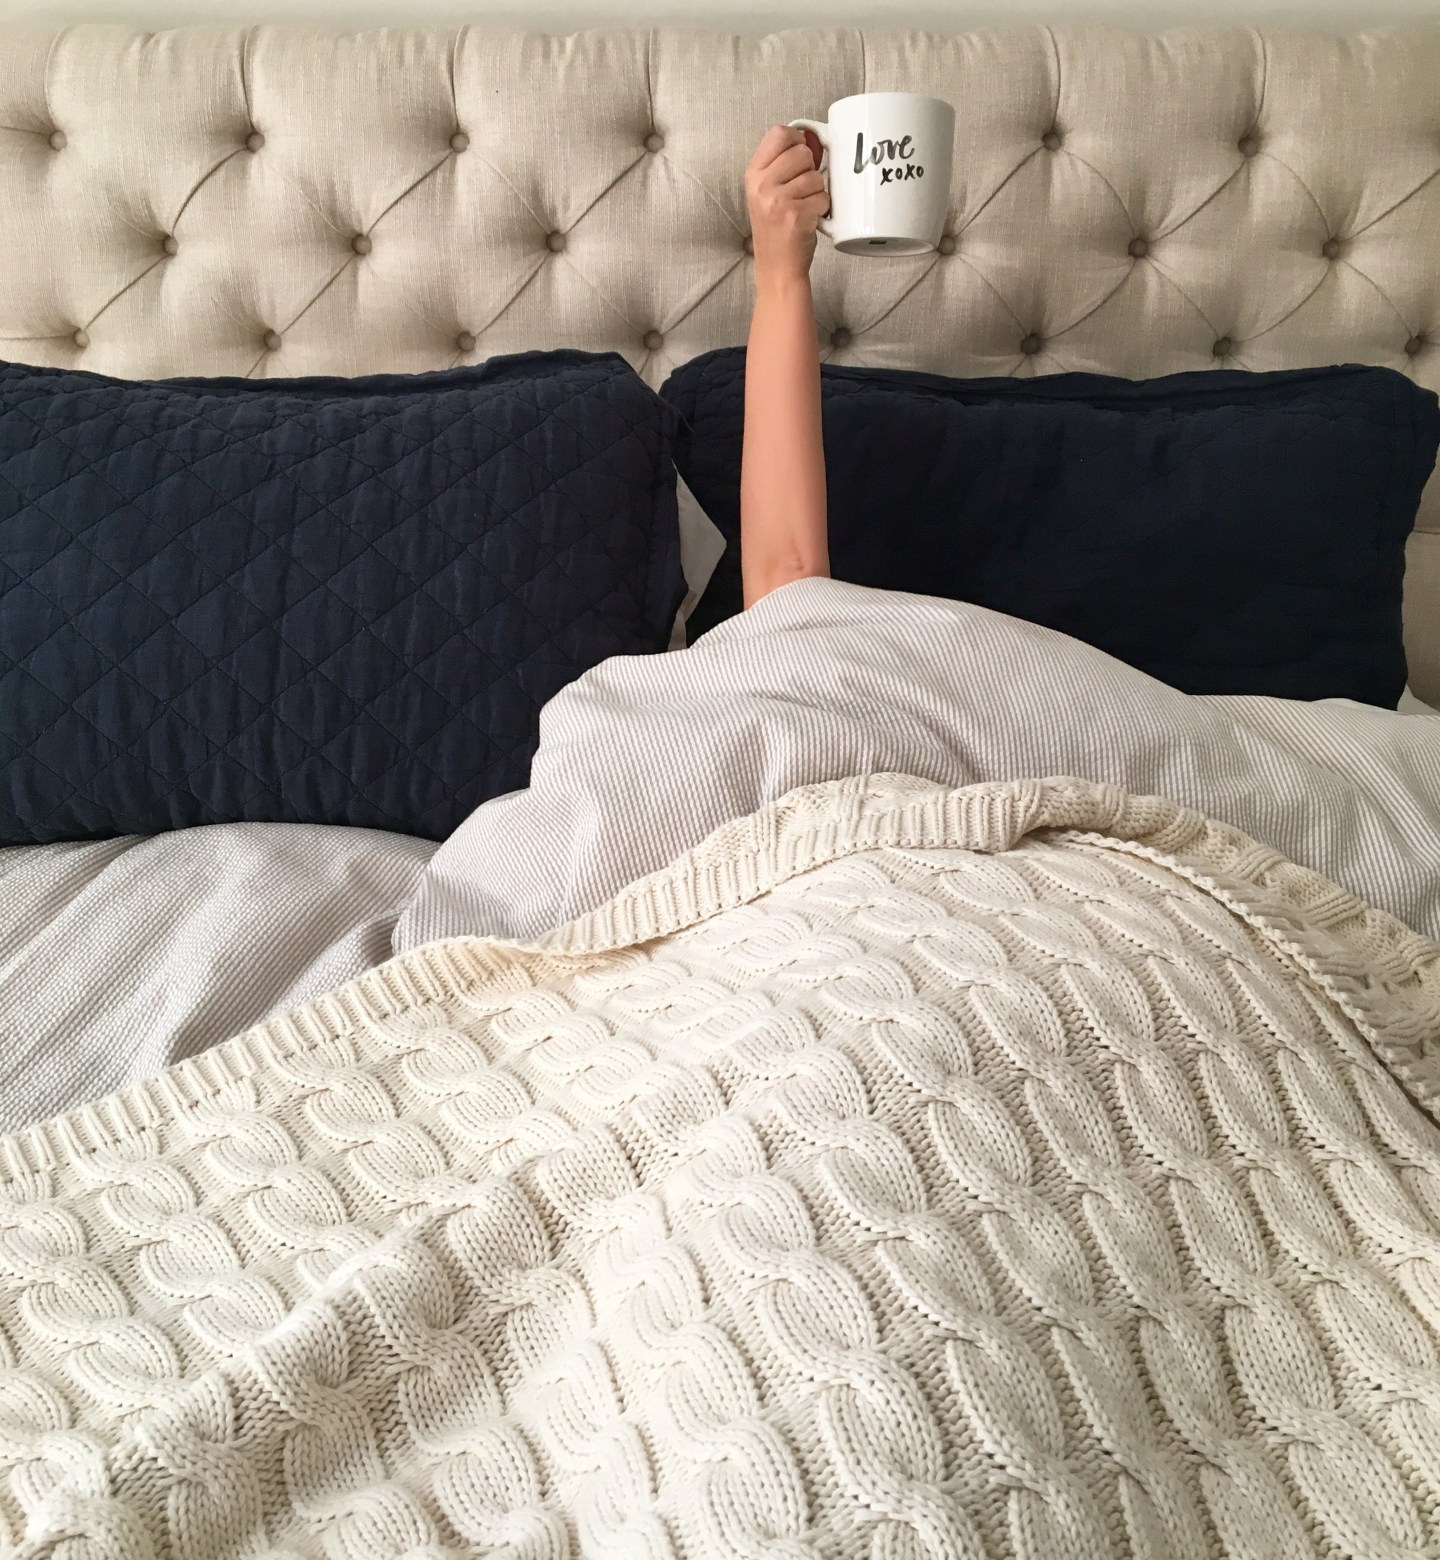 How To: Become a 'Morning Person'